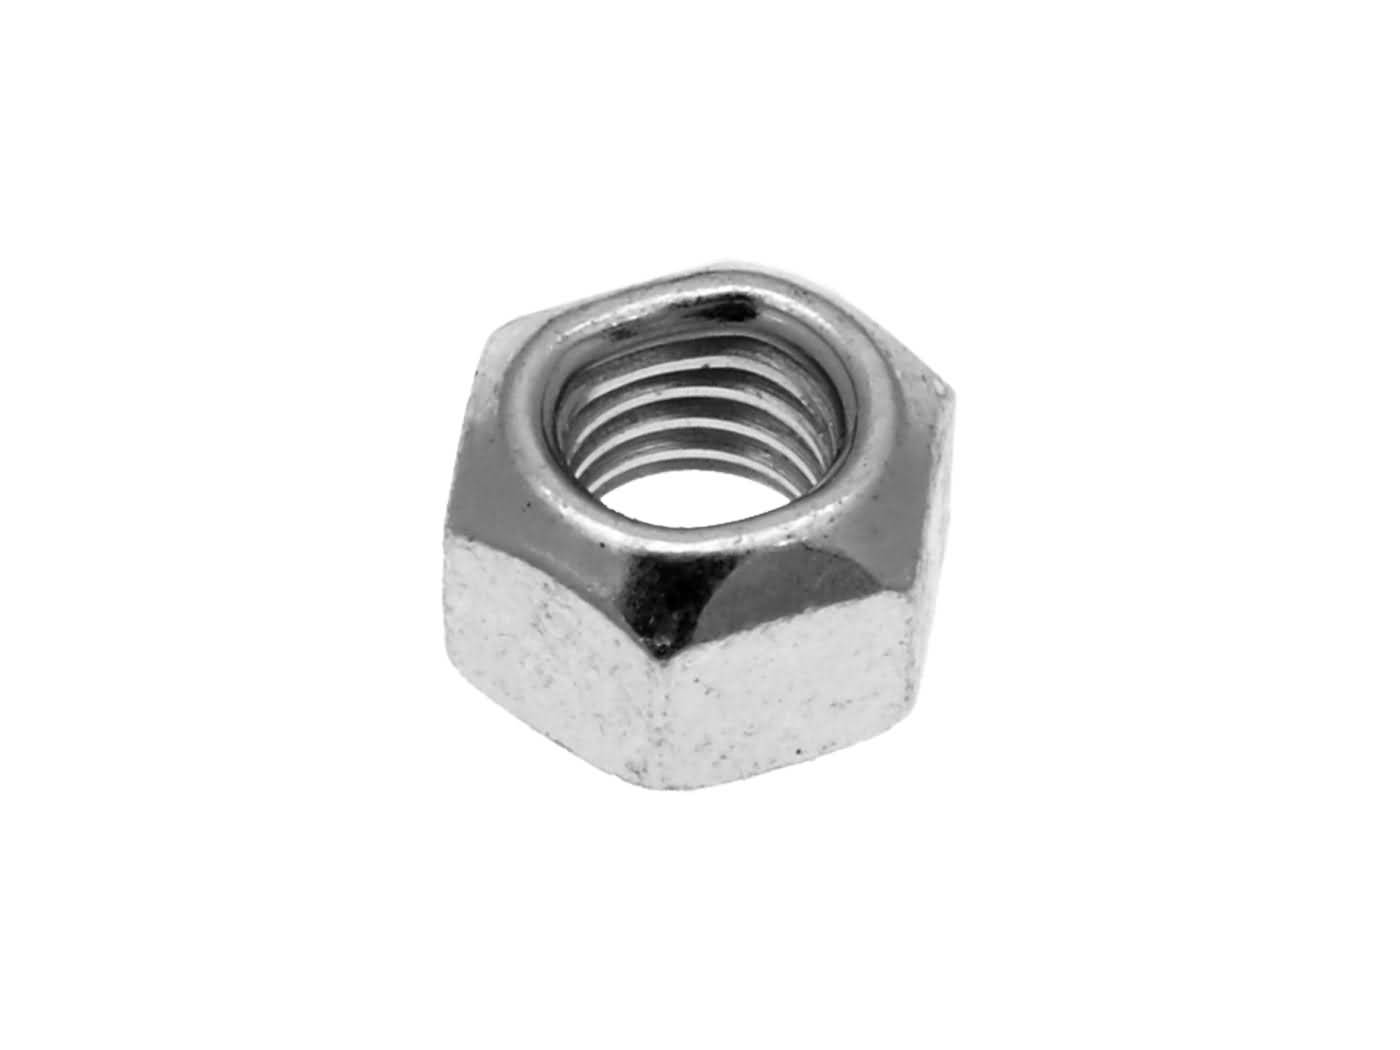 Hex nuts zinc plated galvanized or stainless steel